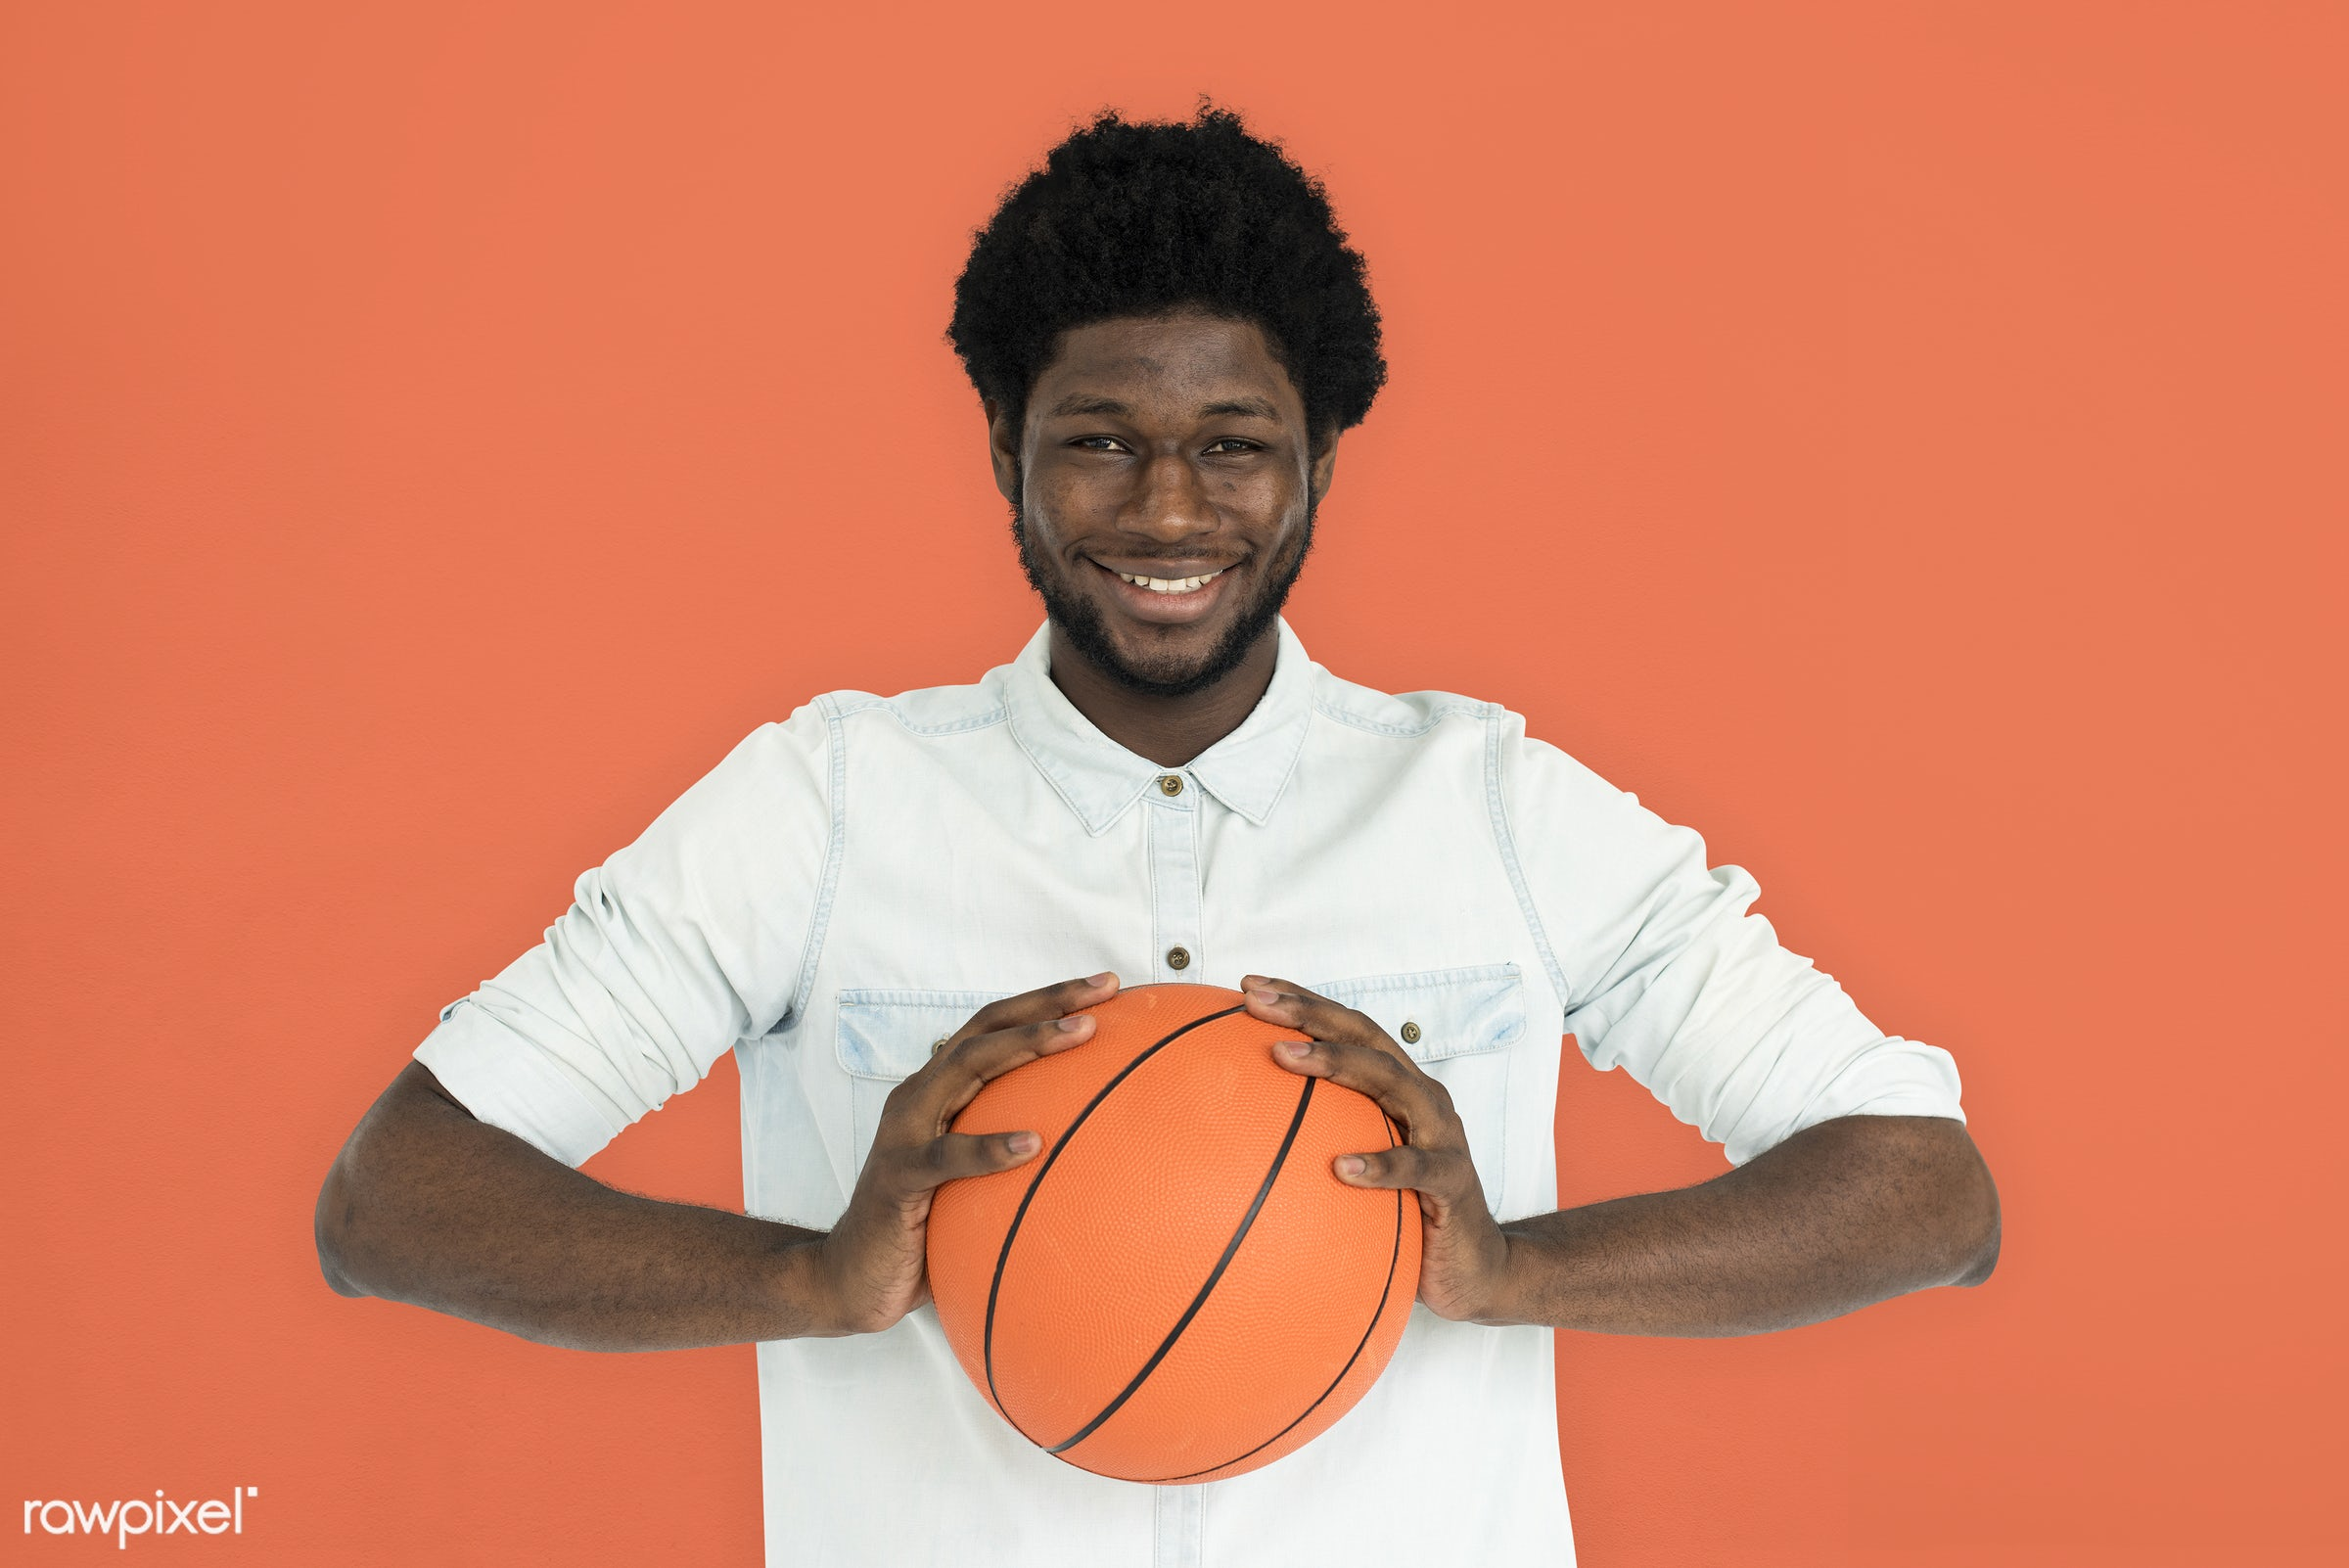 studio, basketball, expression, person, holding, people, lifestyle, cheerful, smiling, orange, isolated, laugh, hobby,...